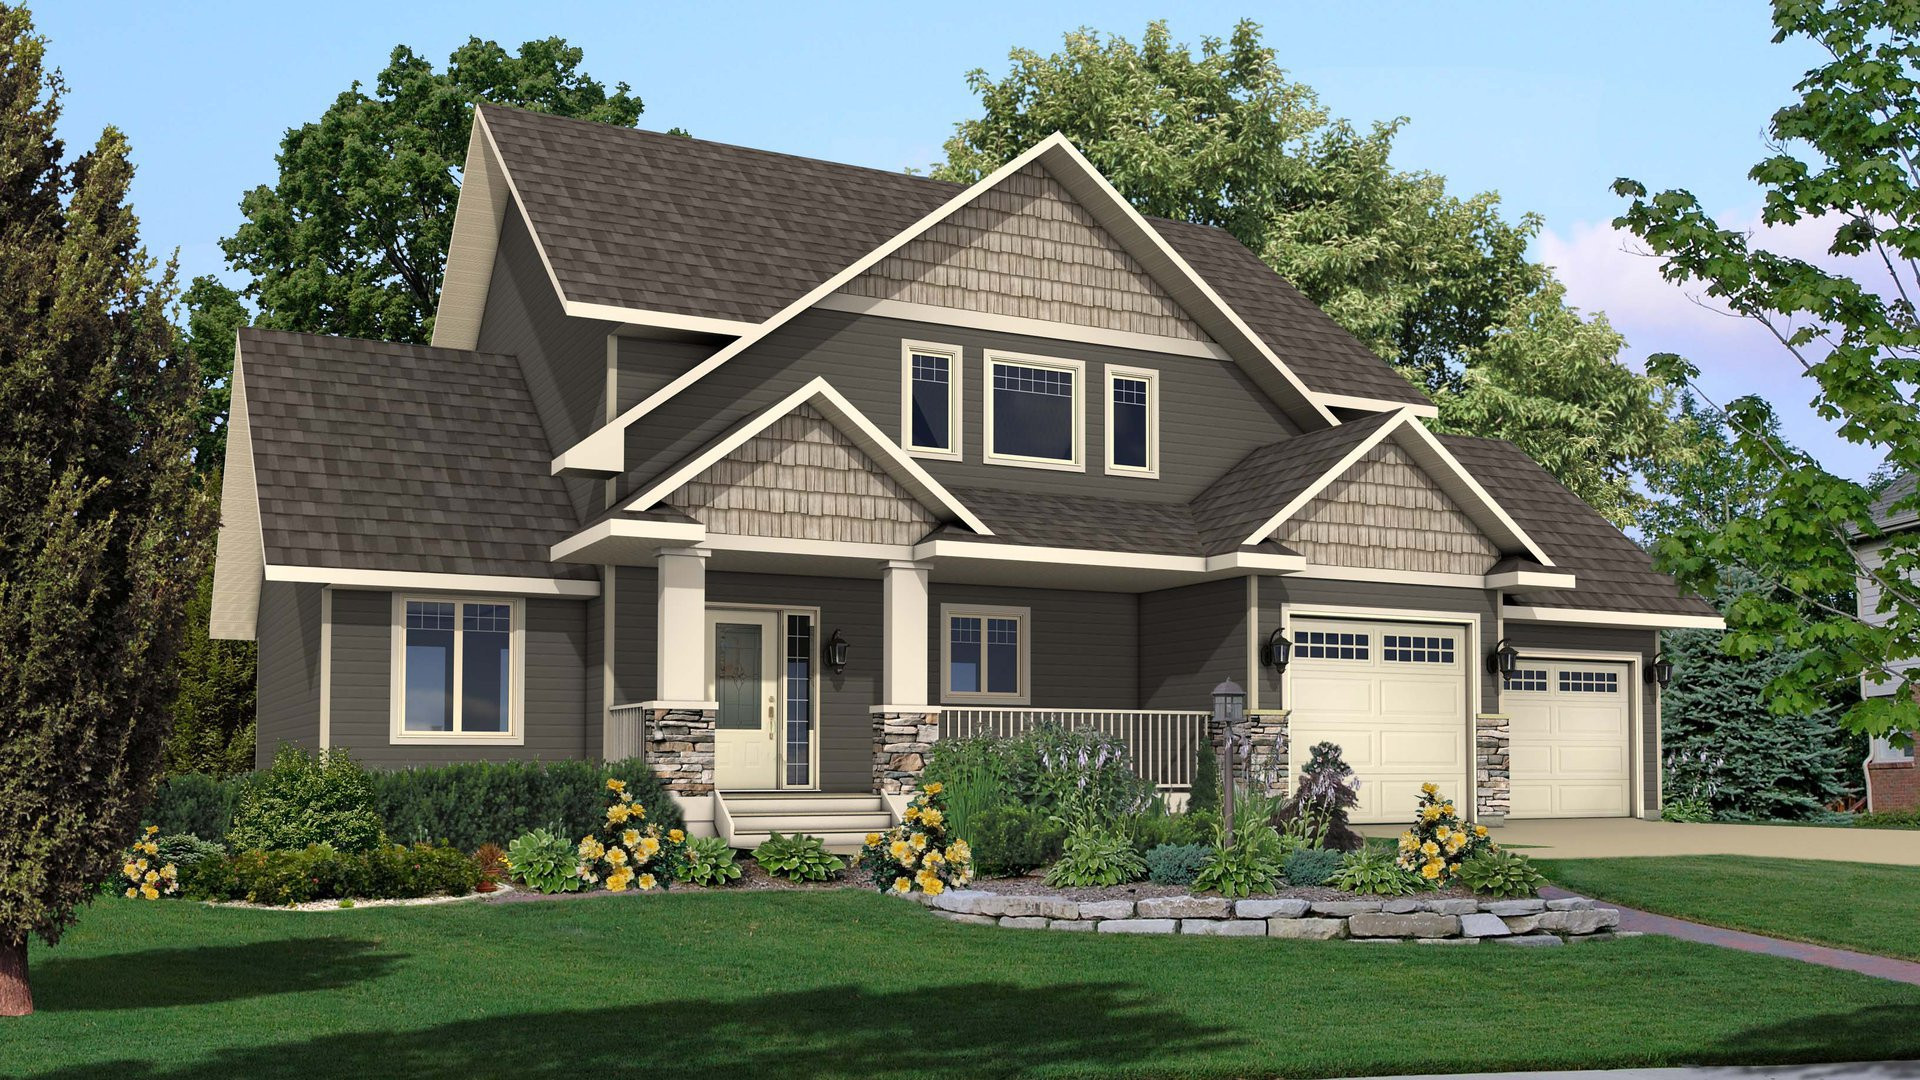 Victory house plan modular homes nelson homes ready to move homes prefabricated home packages.jpg